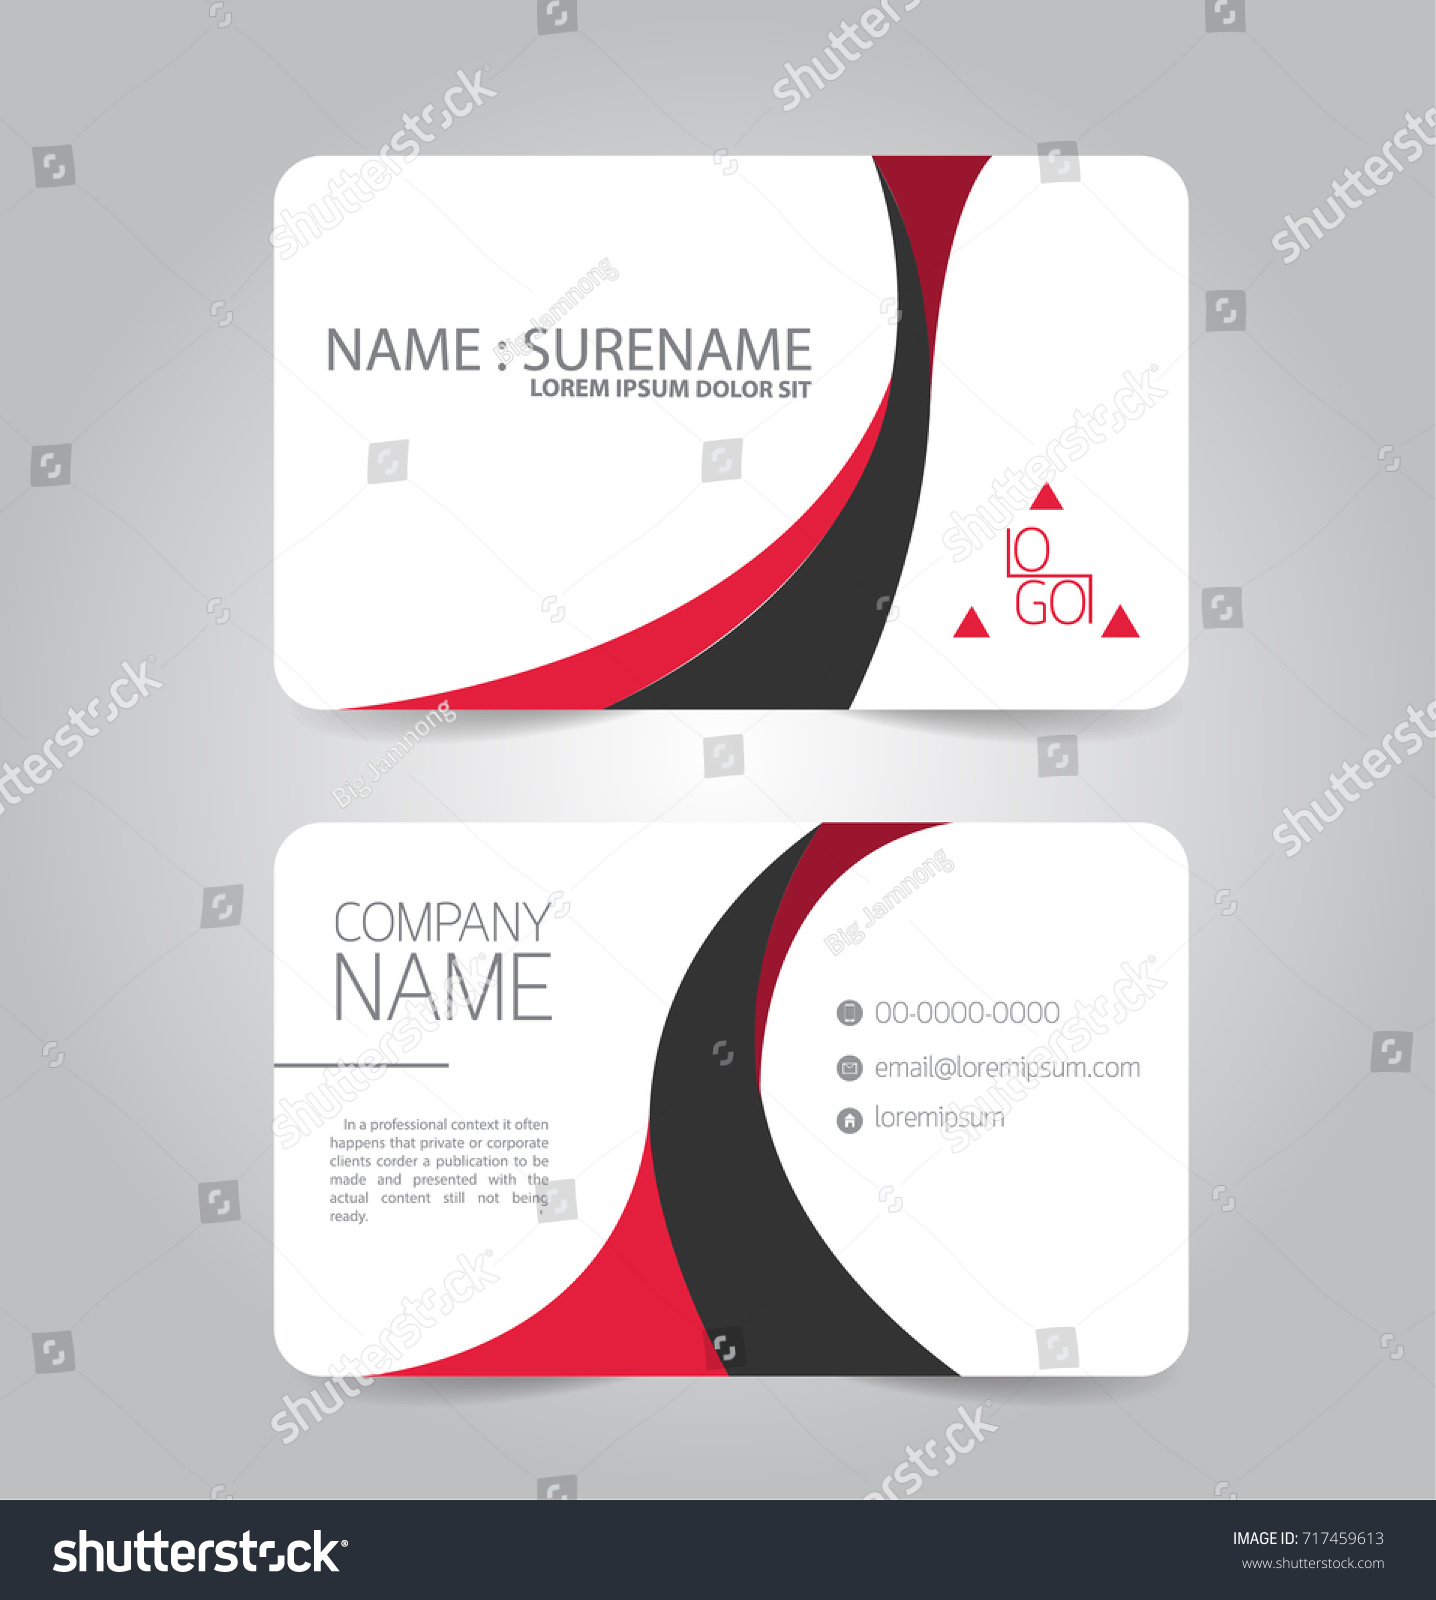 Modern Red Black Business Name Card Stock Vector 717459613 ...